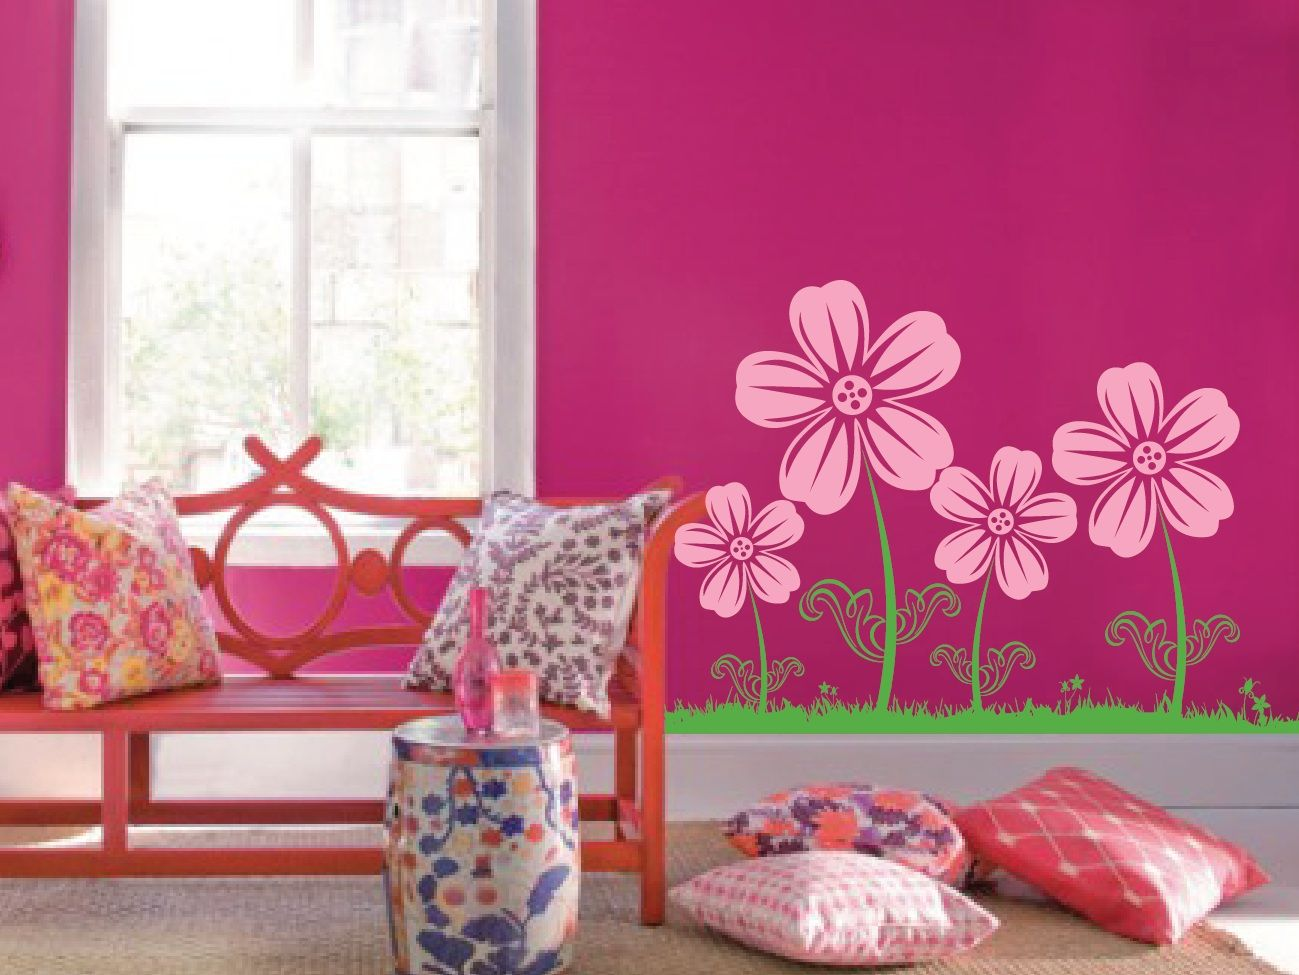 Floral girly bedroom